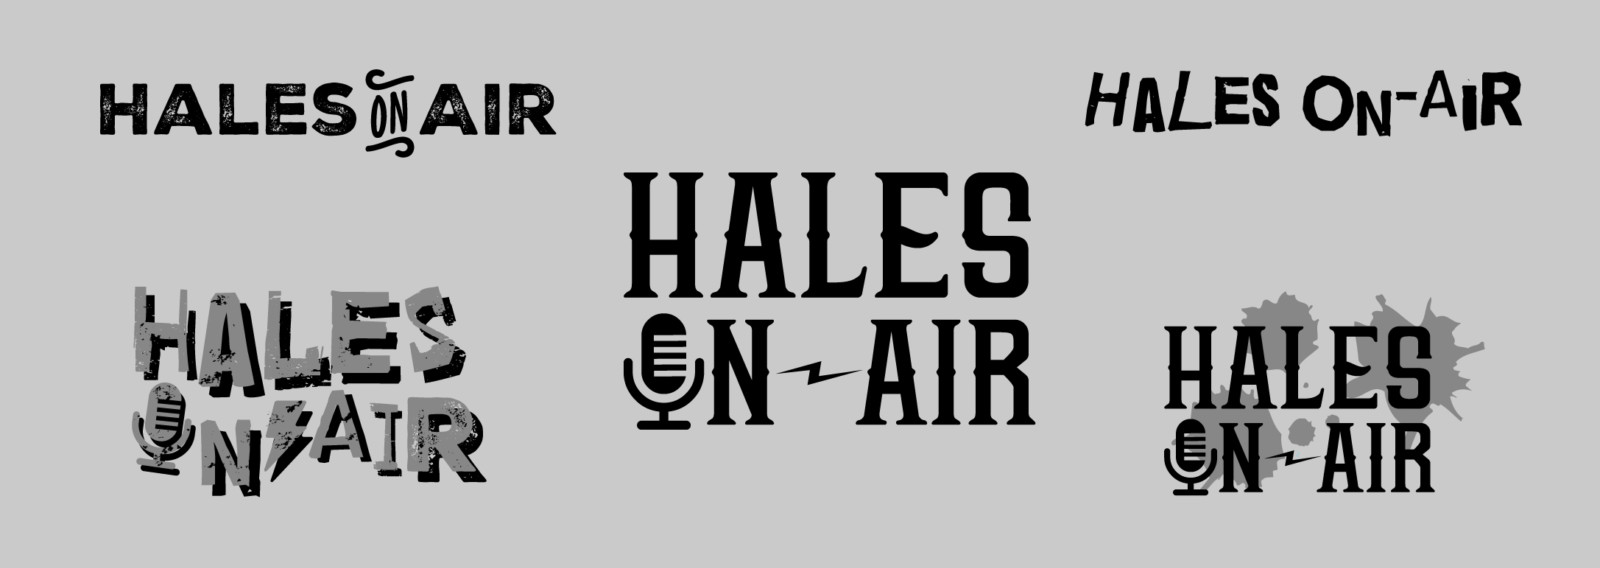 Hales On-Air